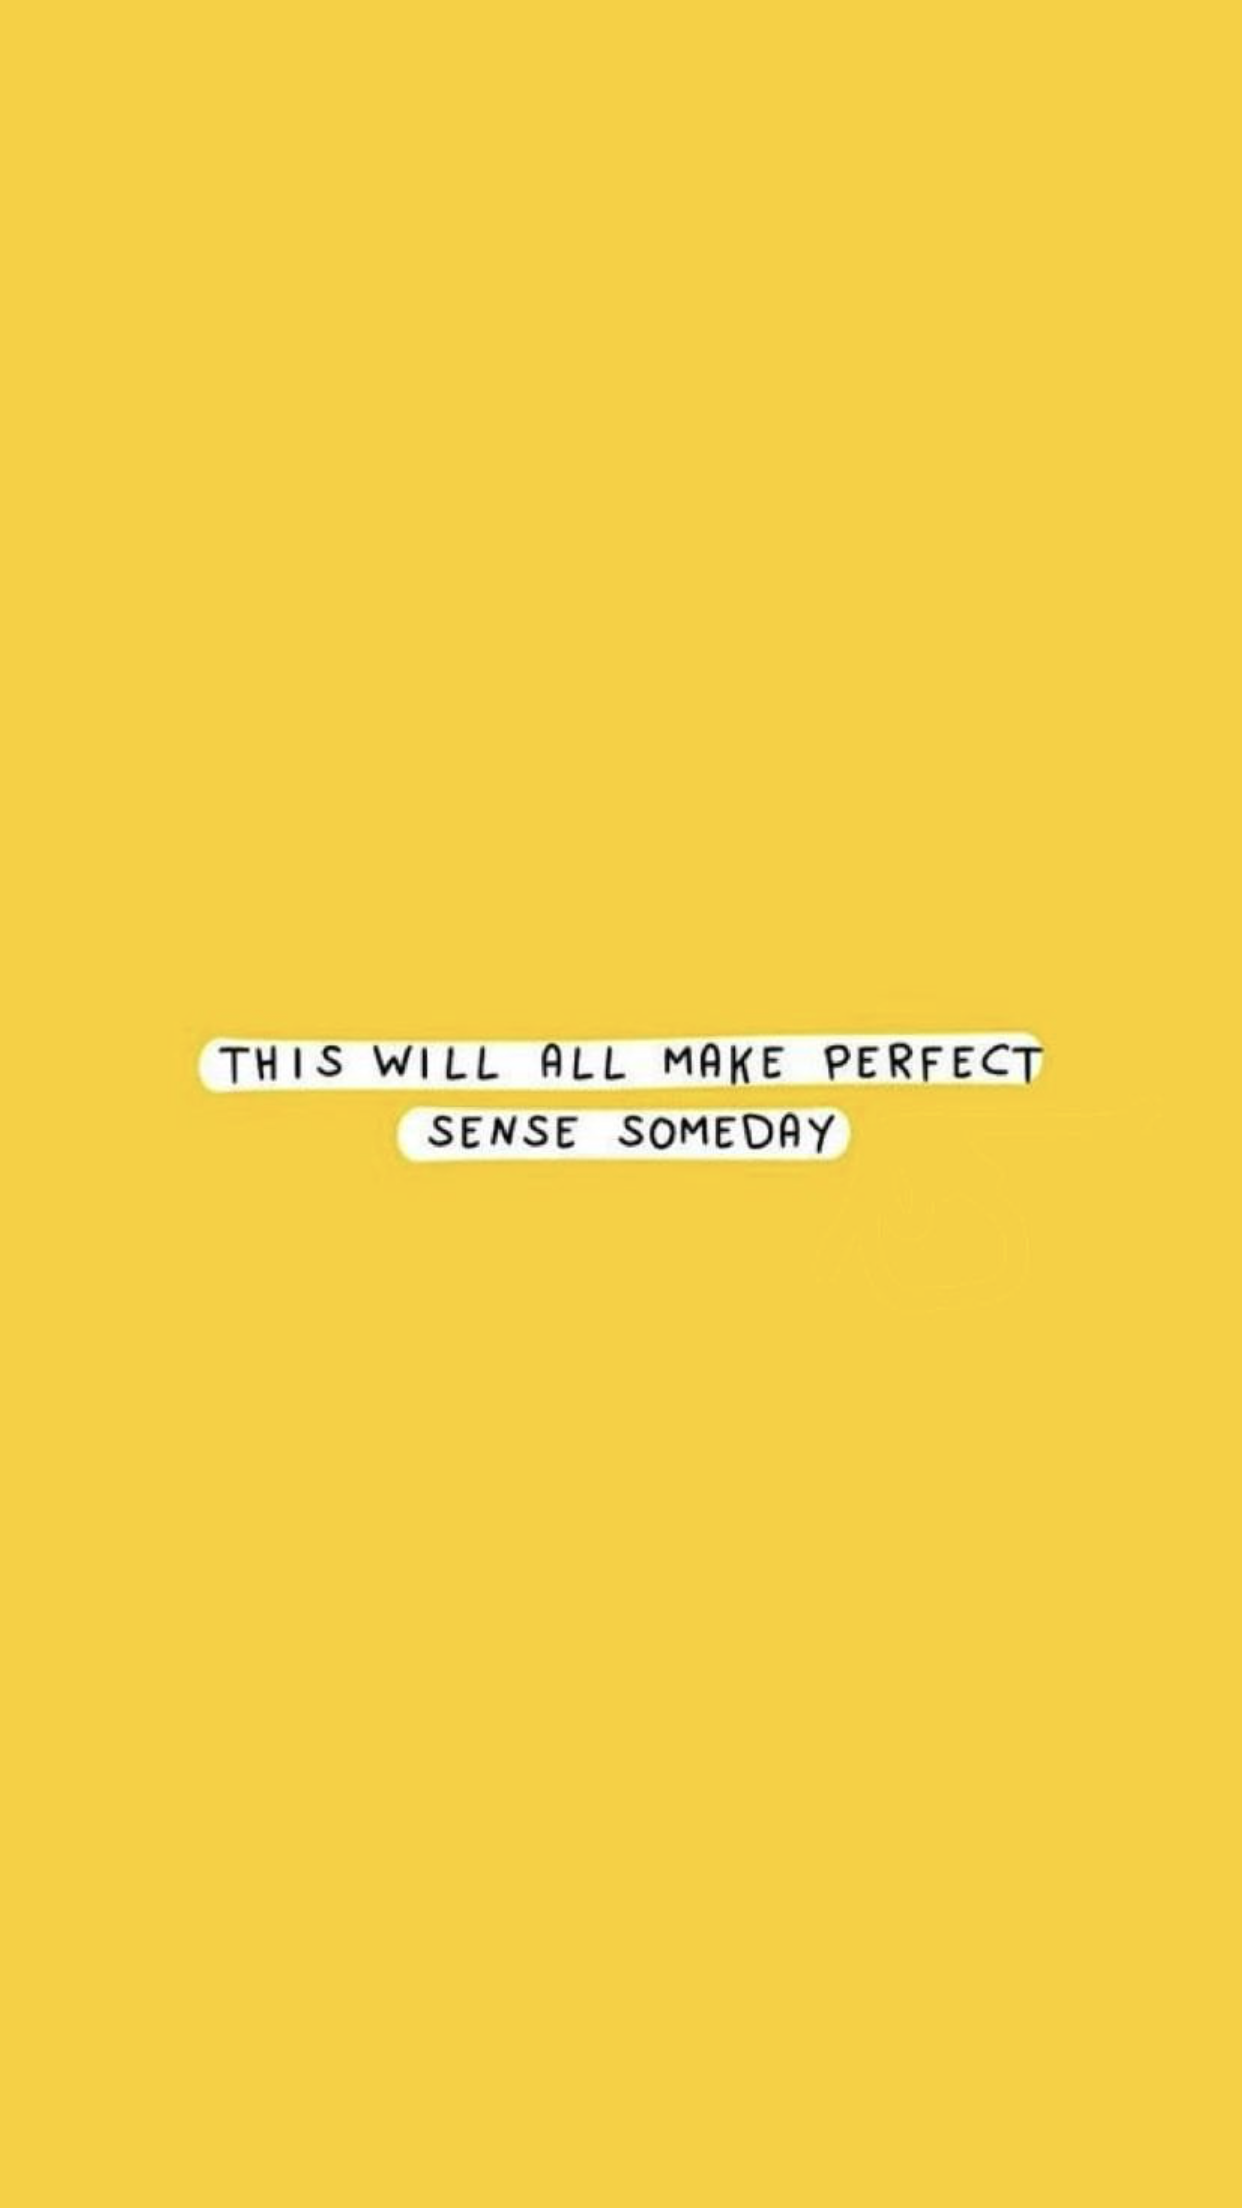 Pin by ava on yellow Yellow quotes, Wallpaper quotes